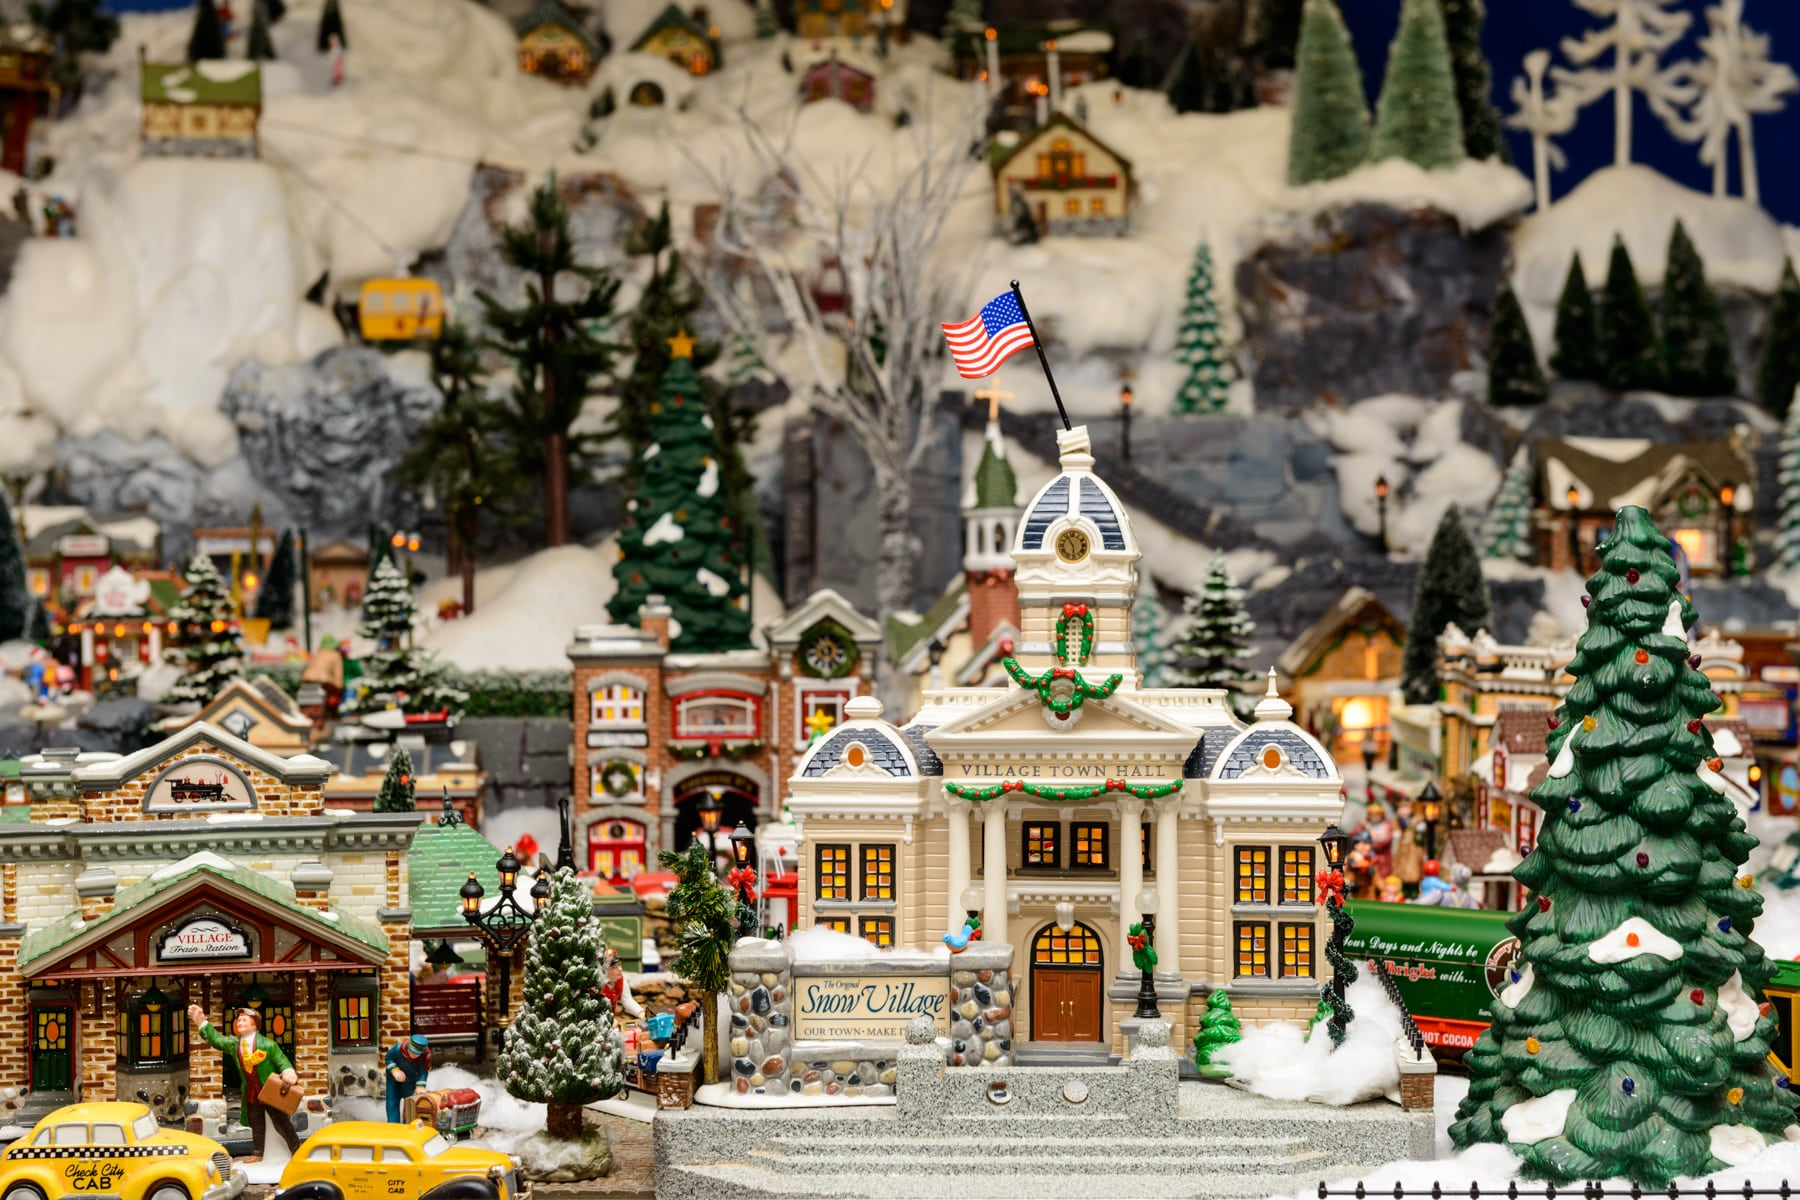 Snow Village, Mass Hort, Wellesley